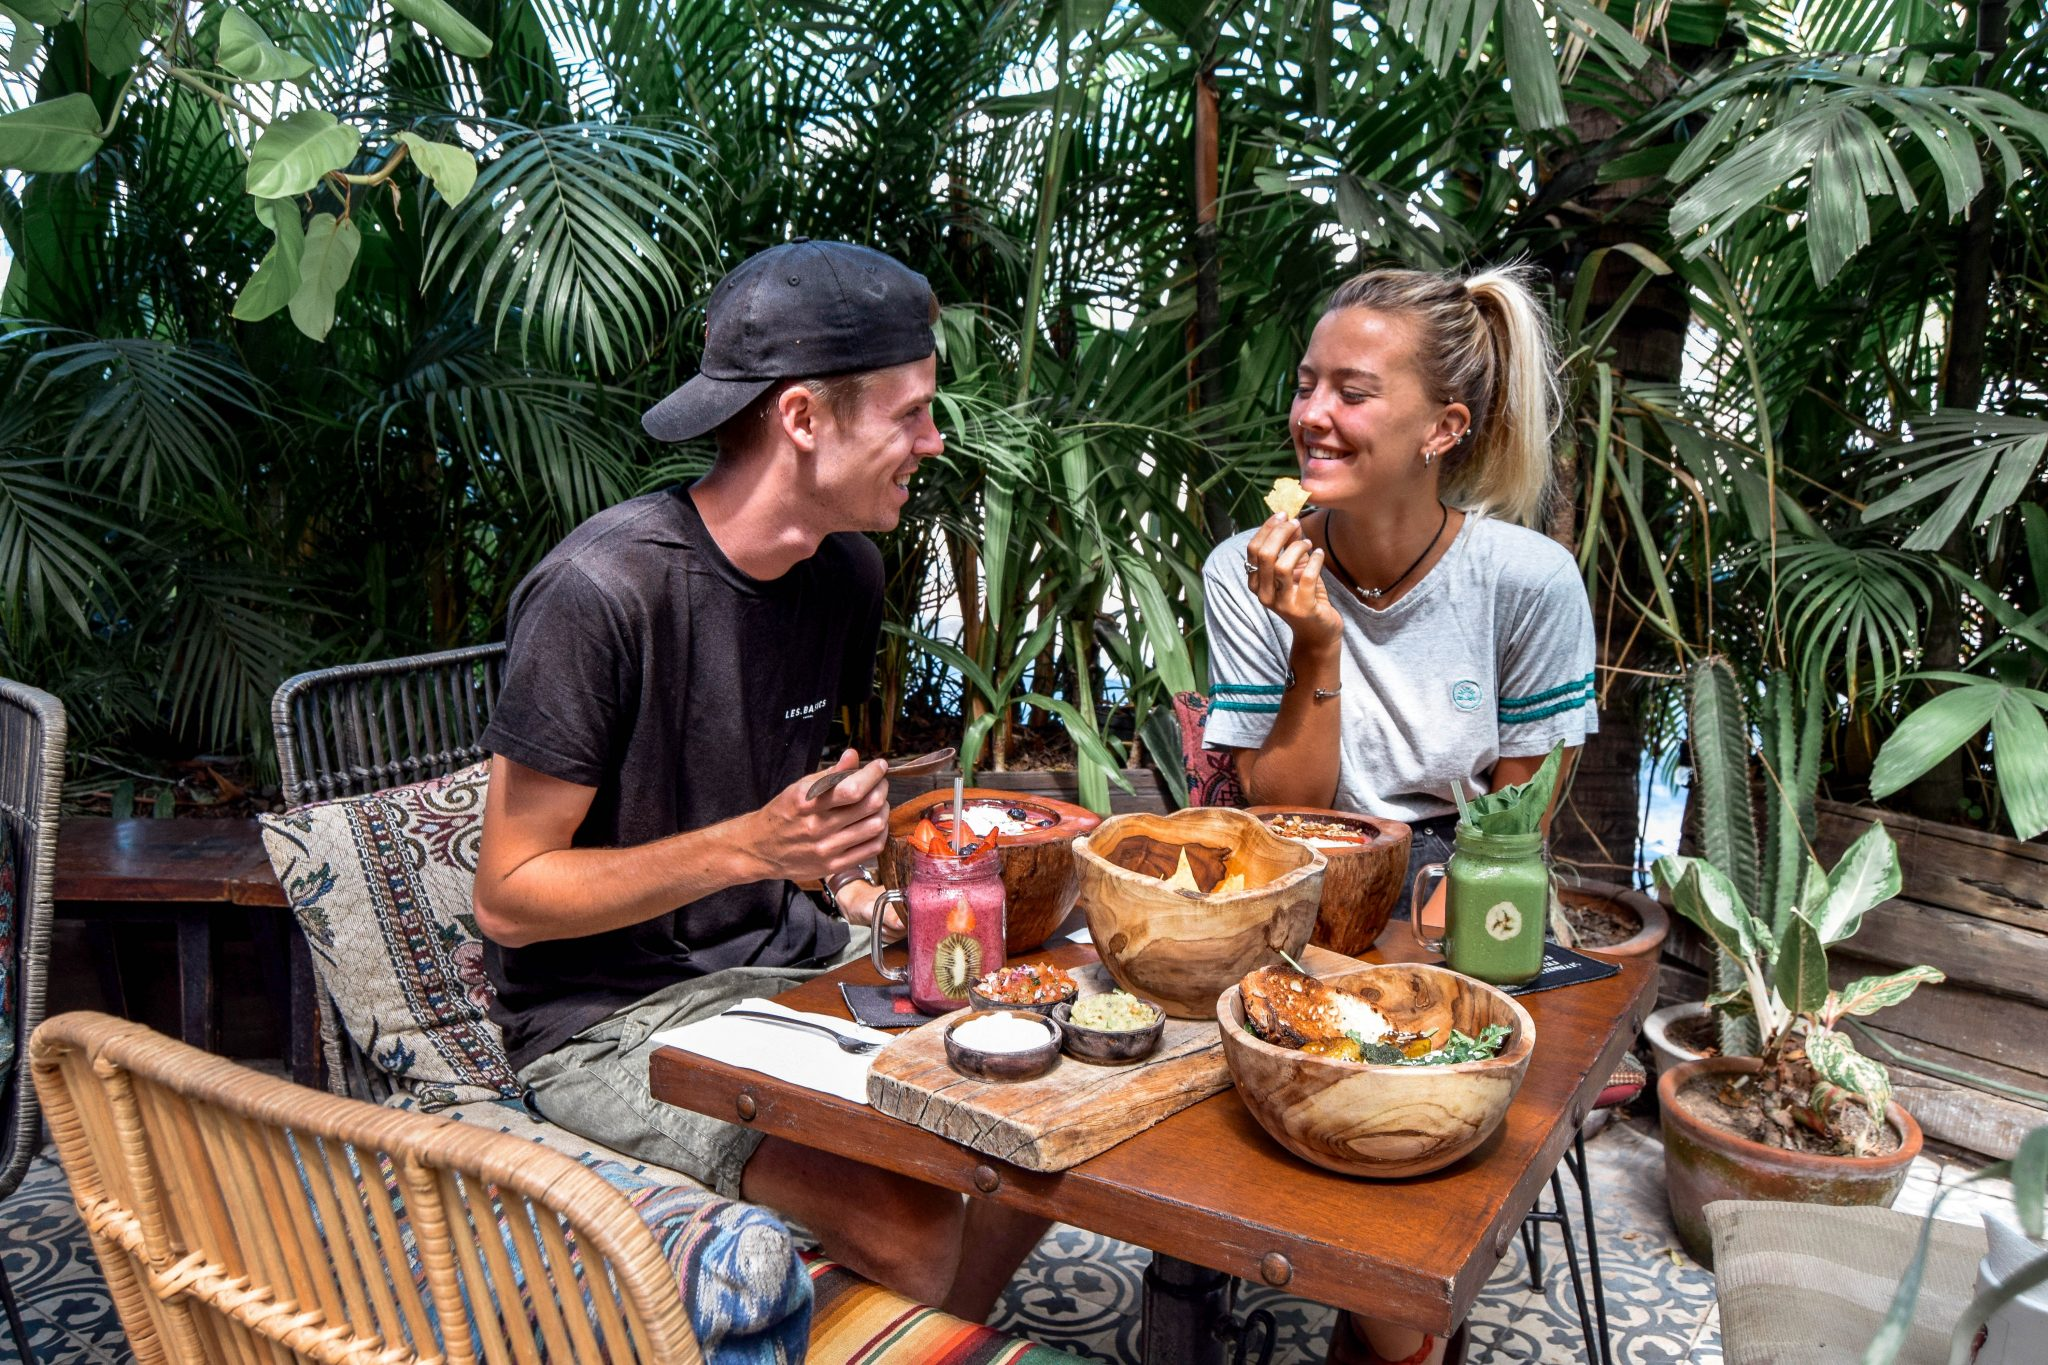 Wanderers & Warriors - Charlie & Lauren UK Travel Couple - Strawberry Fields Seminyak Bali - Best Restaurants In Bali Food - Best Restaurants In Seminyak Bali - Best Restaurants In Bali Restaurants - Best Restaurants In Seminyak